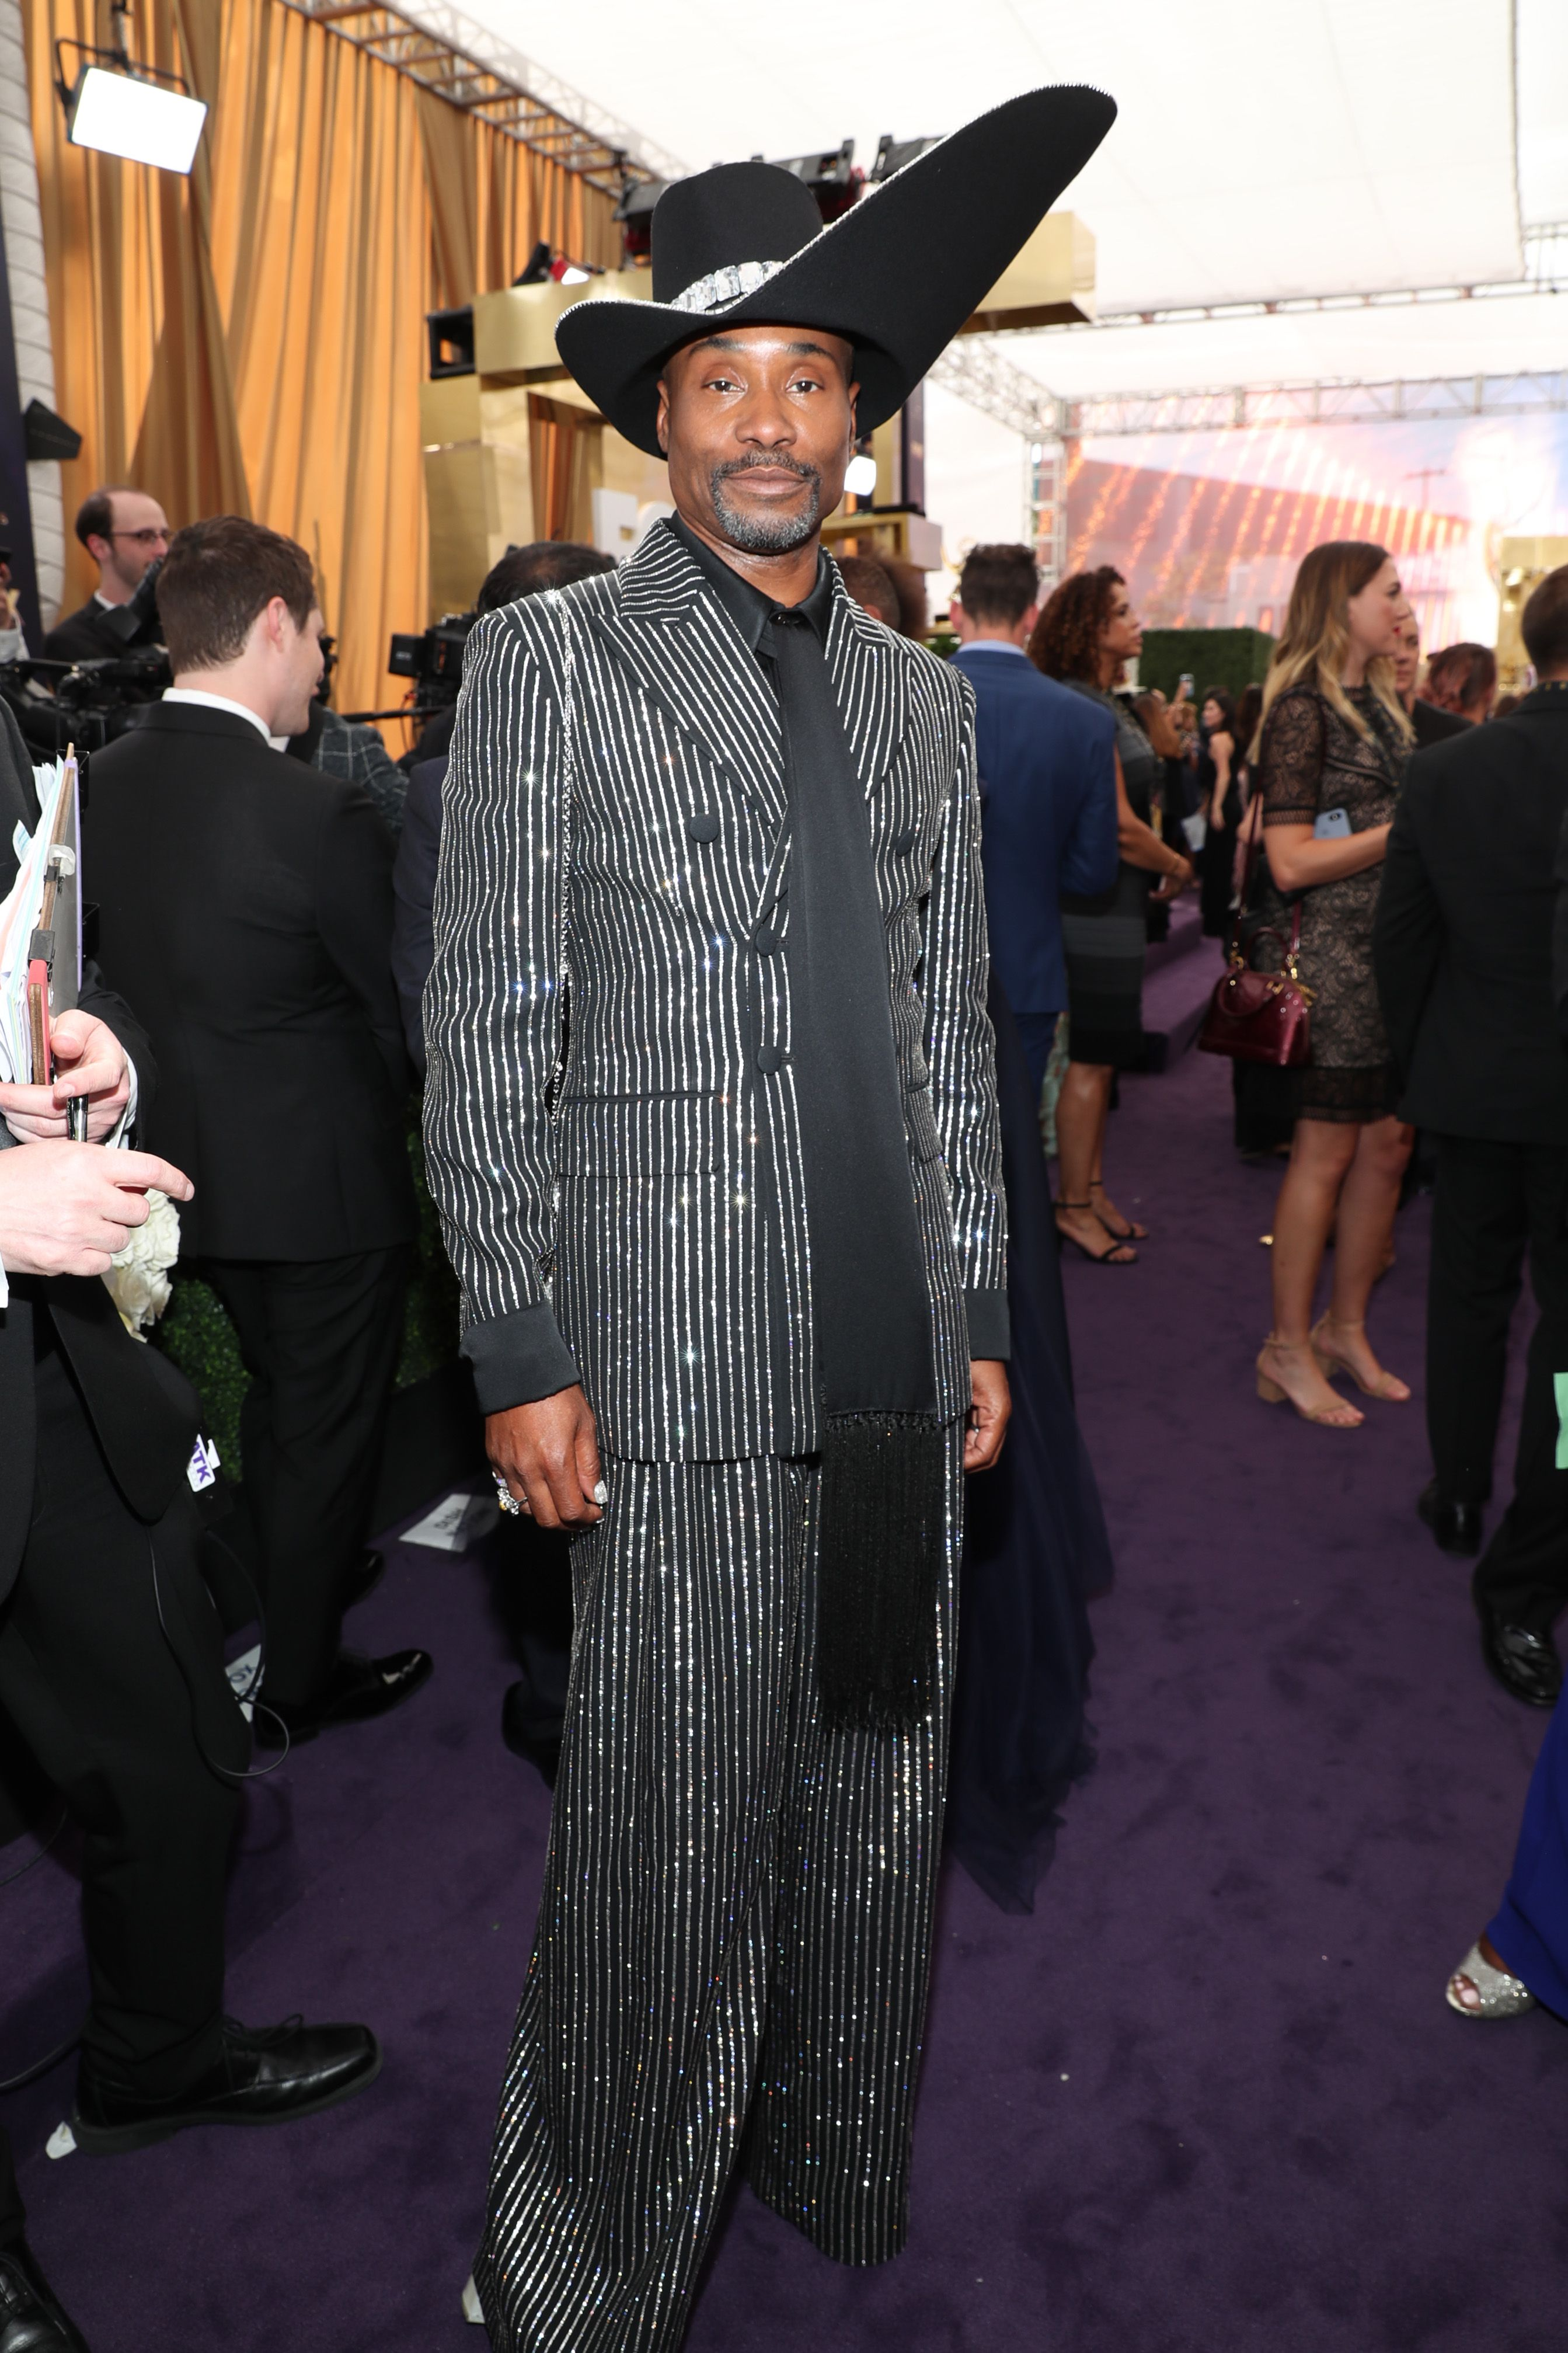 Billy Porter Wears A Striped Suit And The Most Extra Hat To The 2019 Emmys